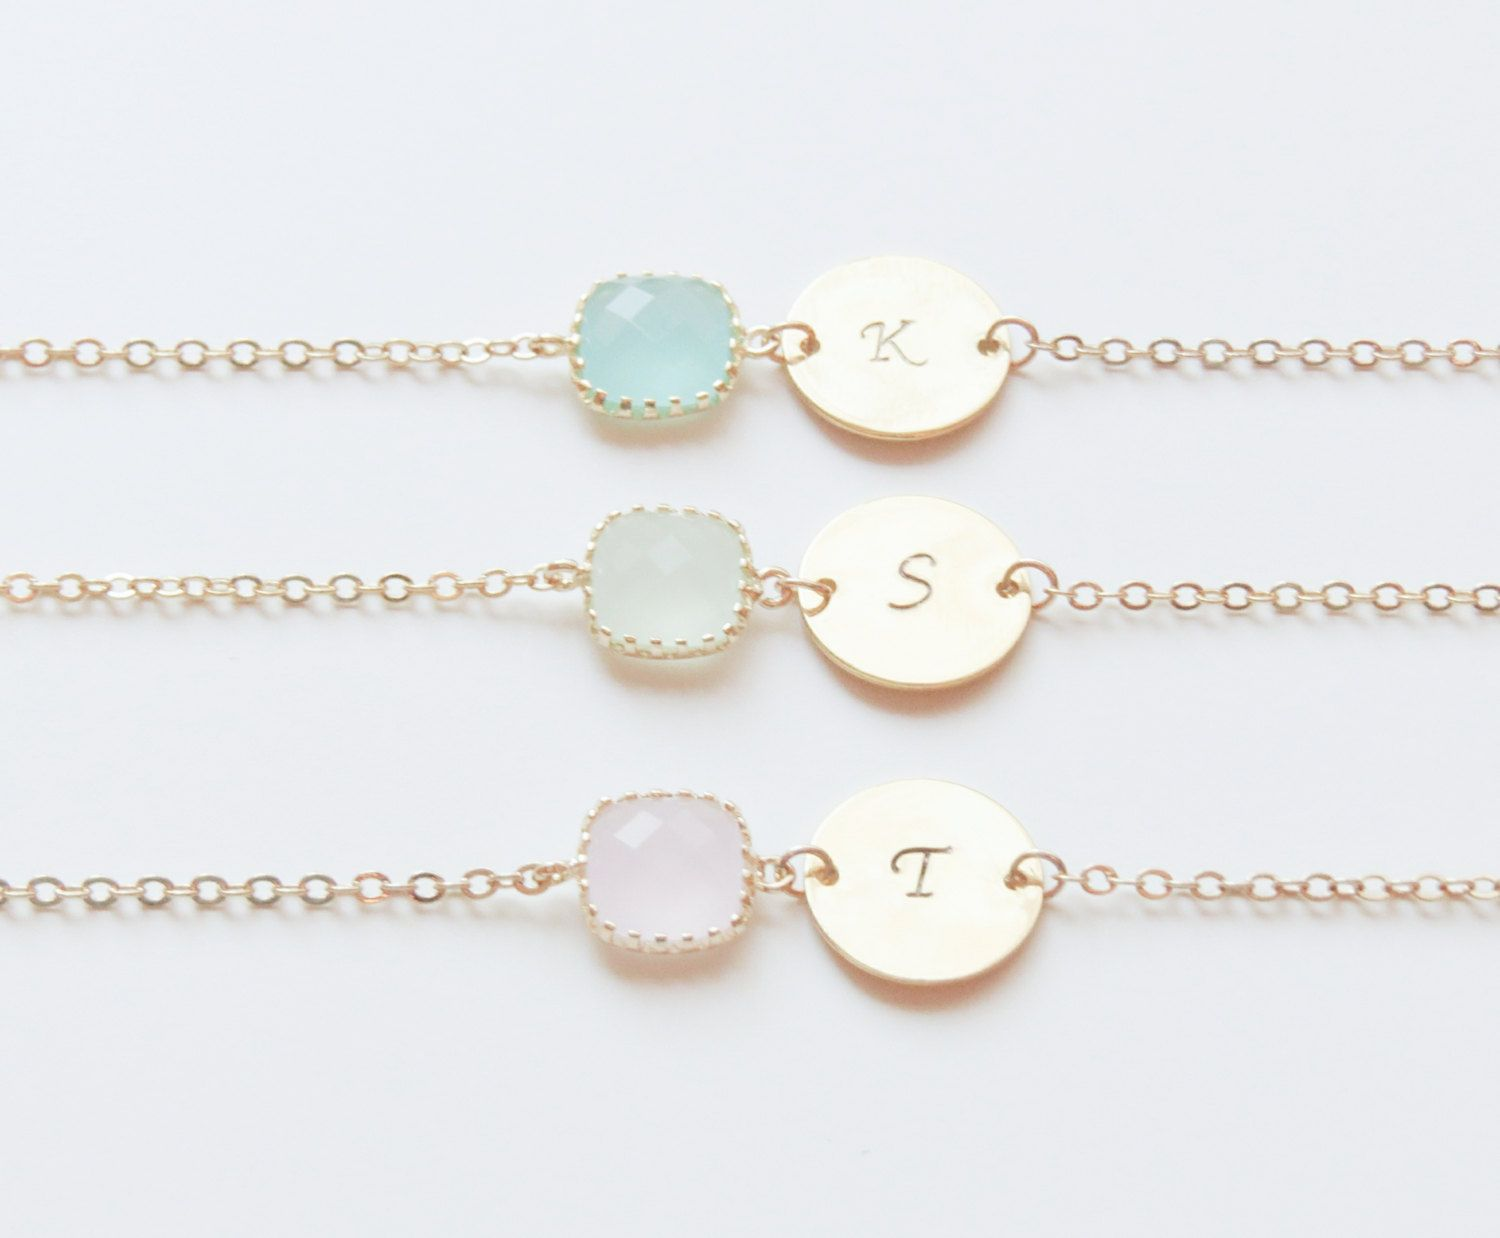 Personalized Bracelets | Birthstone & Initial Bracelet | Birthstone Bracelet | Initial Bracelet | Bridesmaids Bracelets | Christmas Gift by SweetheartJewelryBox on Etsy